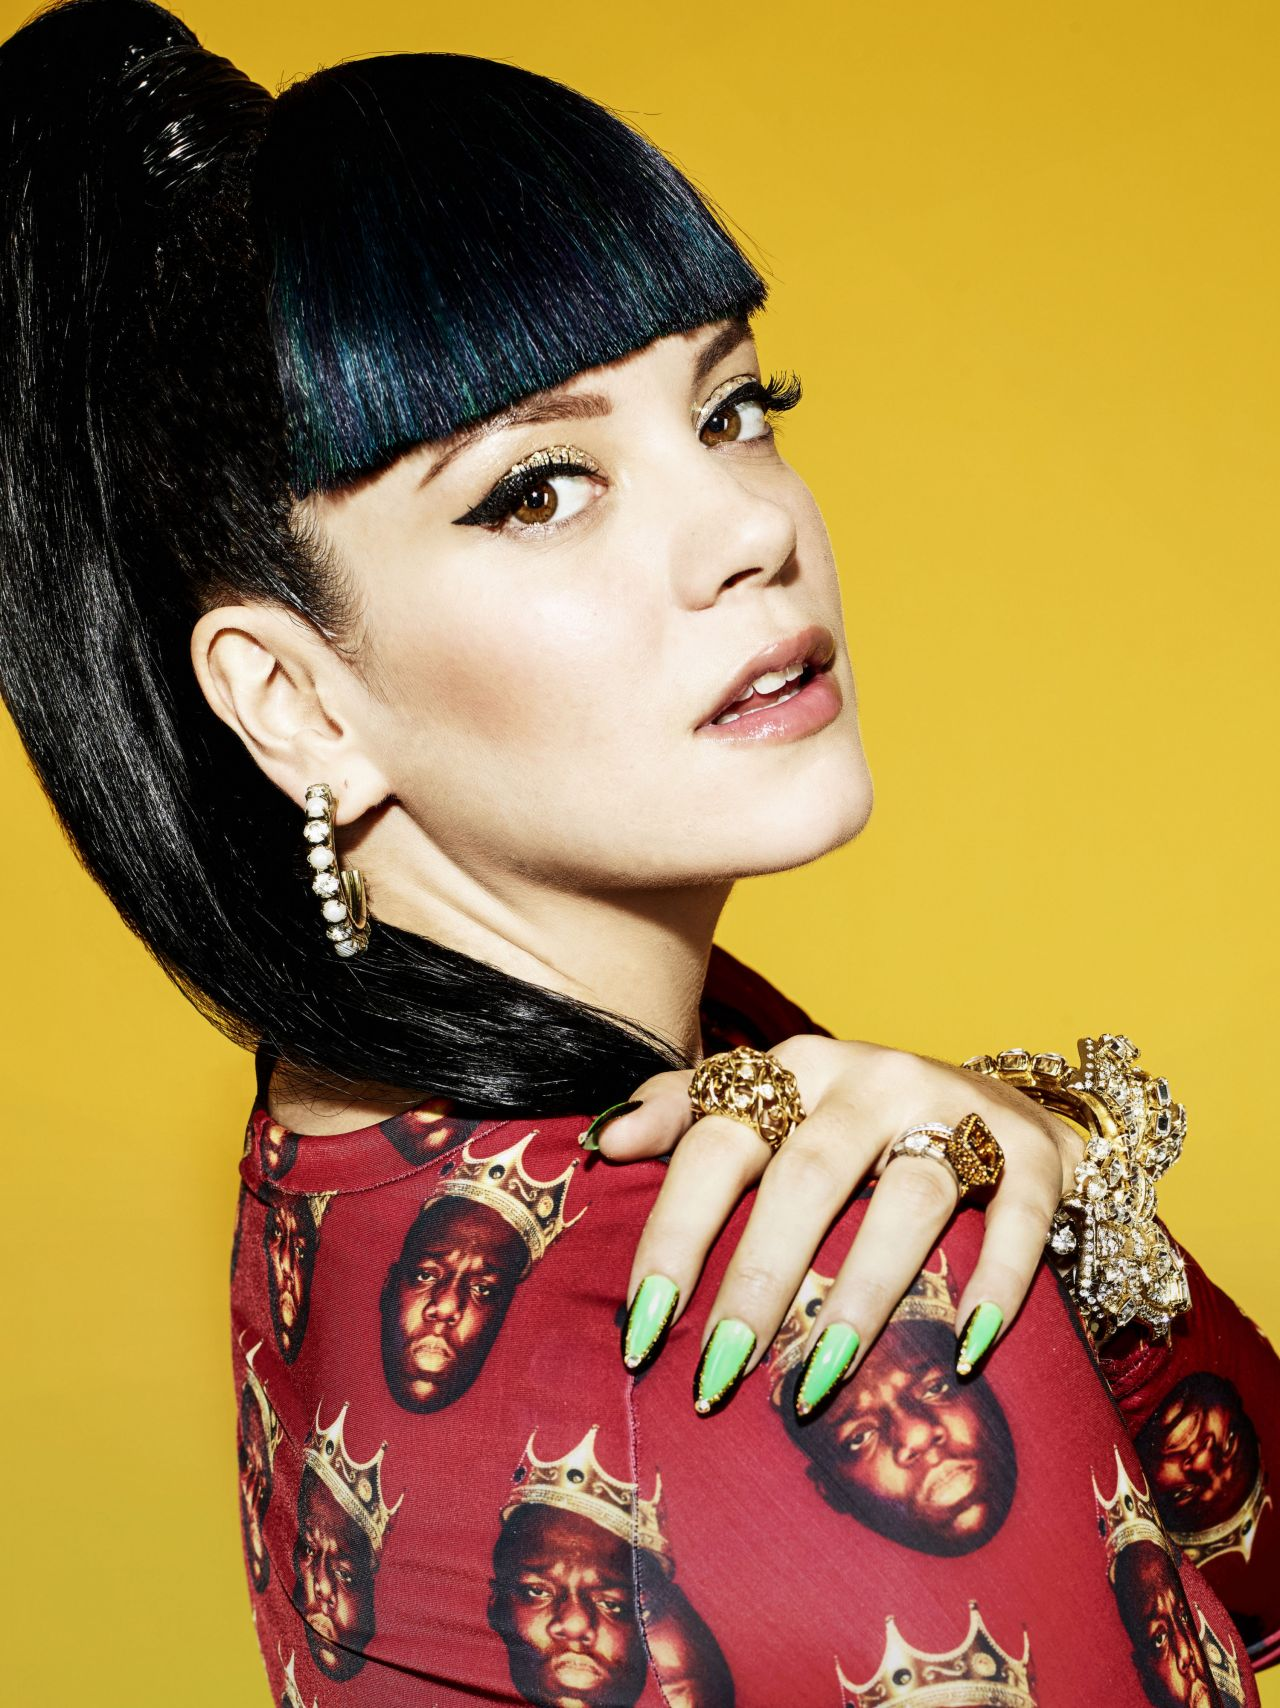 Lily Allen NME 2014 Photoshoot